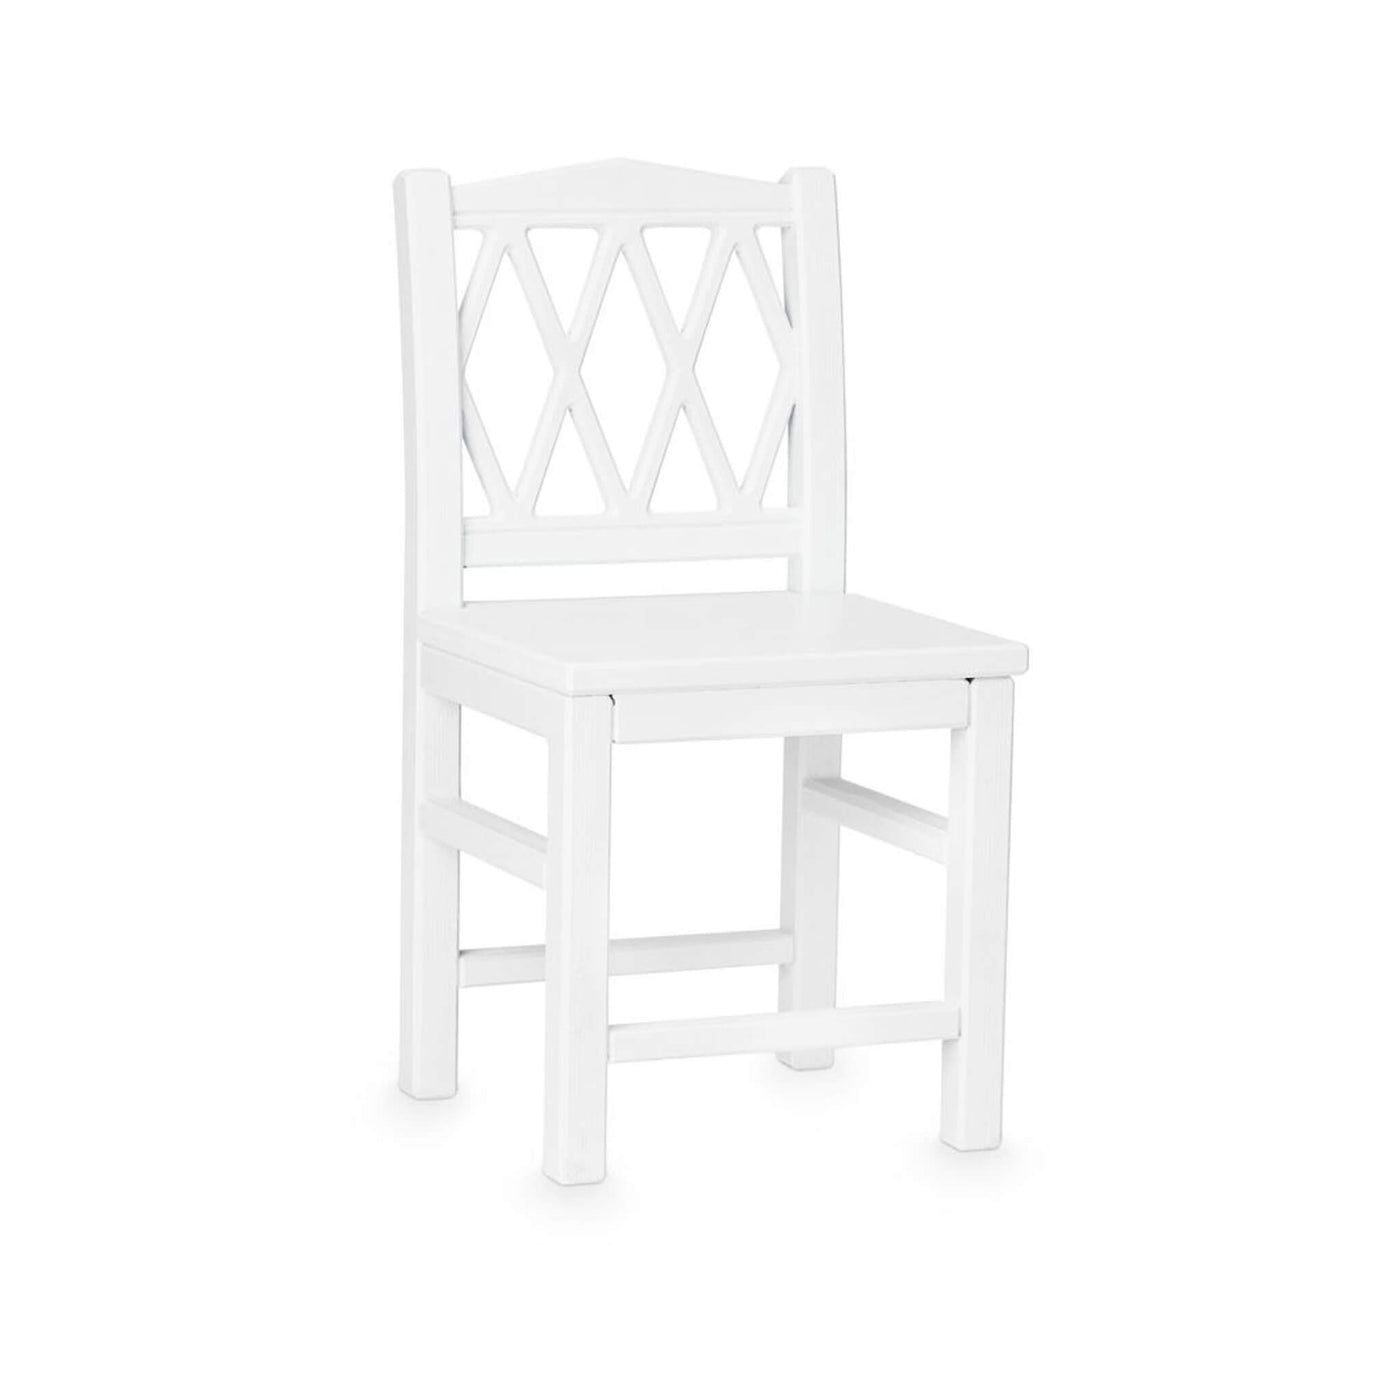 Harlequin Chair - White